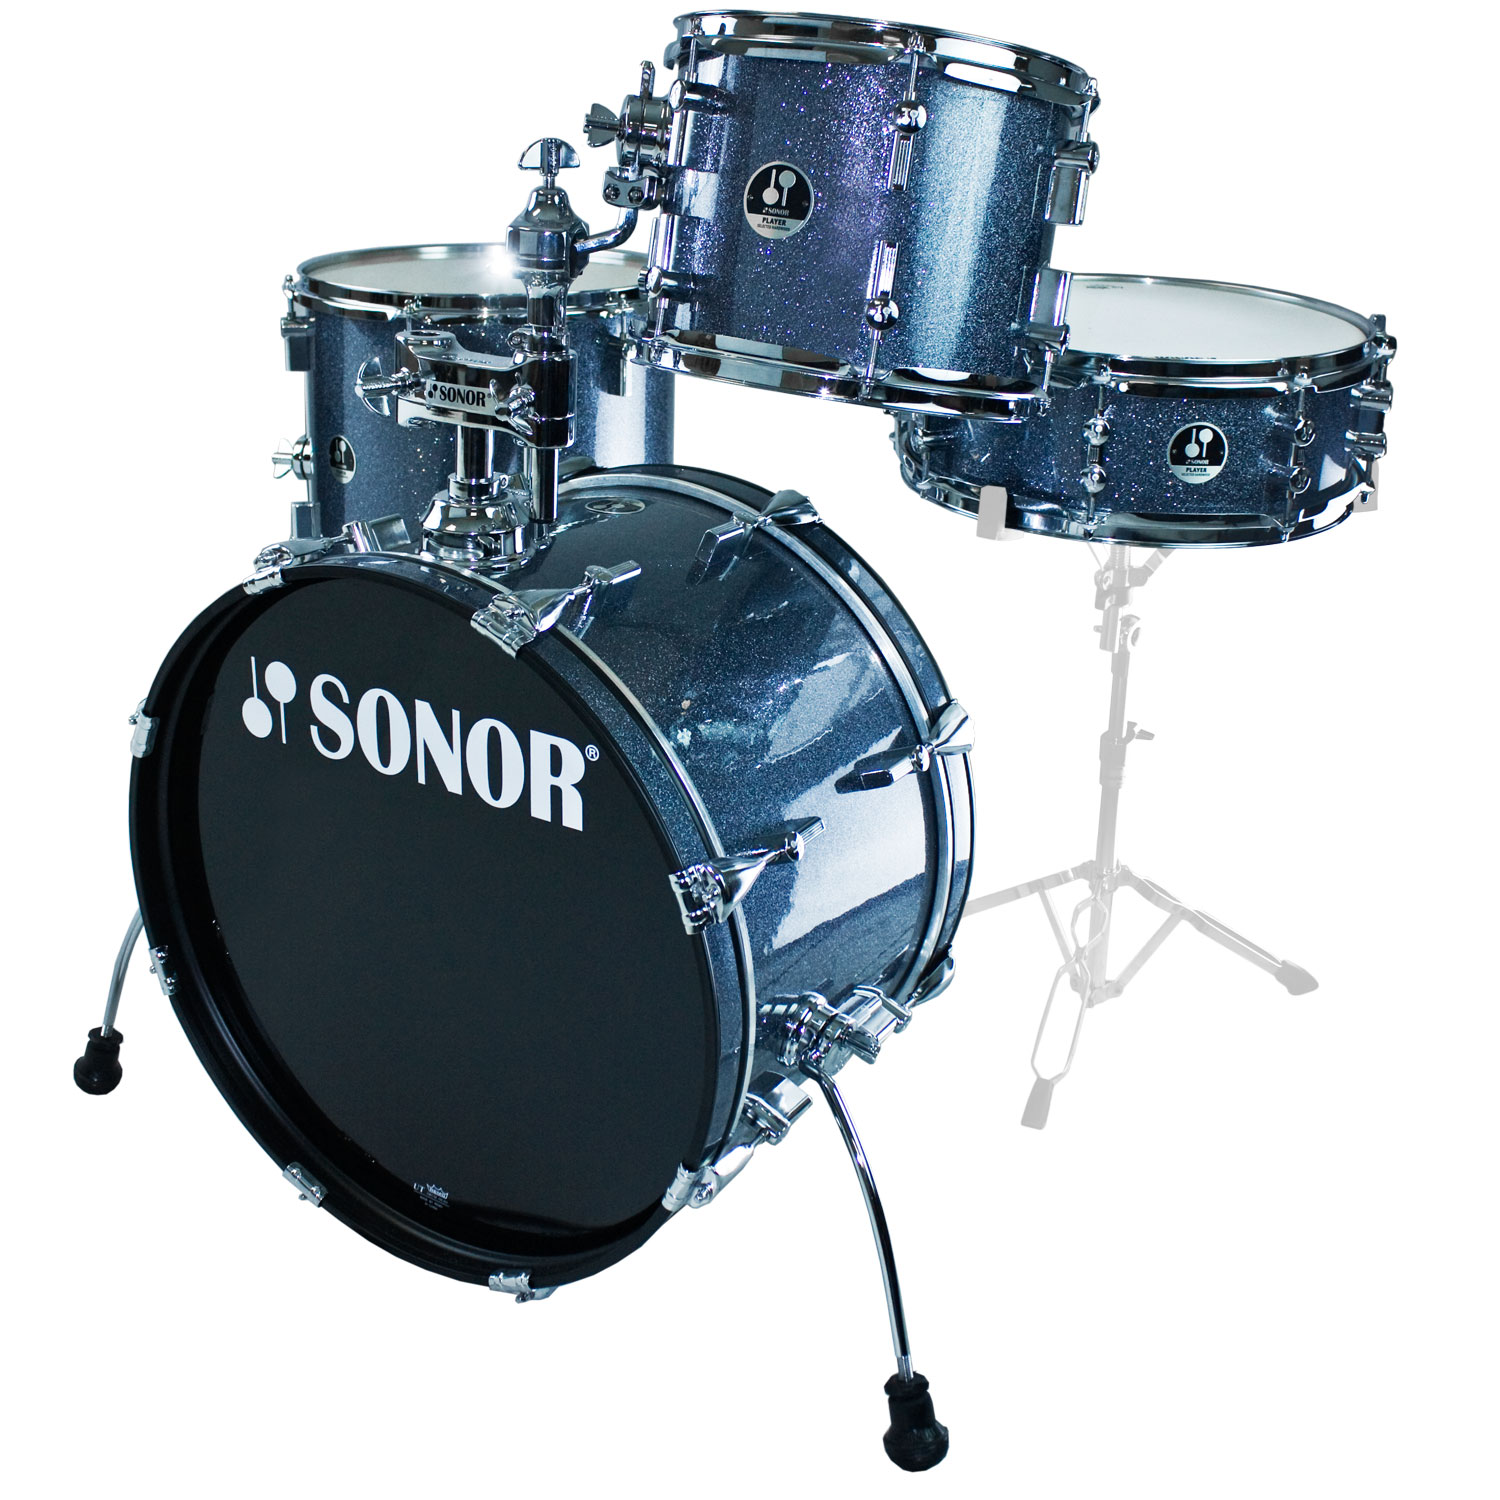 sonor player kit 4 piece drum set shell pack 20 bass 10 14 toms 14 snare. Black Bedroom Furniture Sets. Home Design Ideas